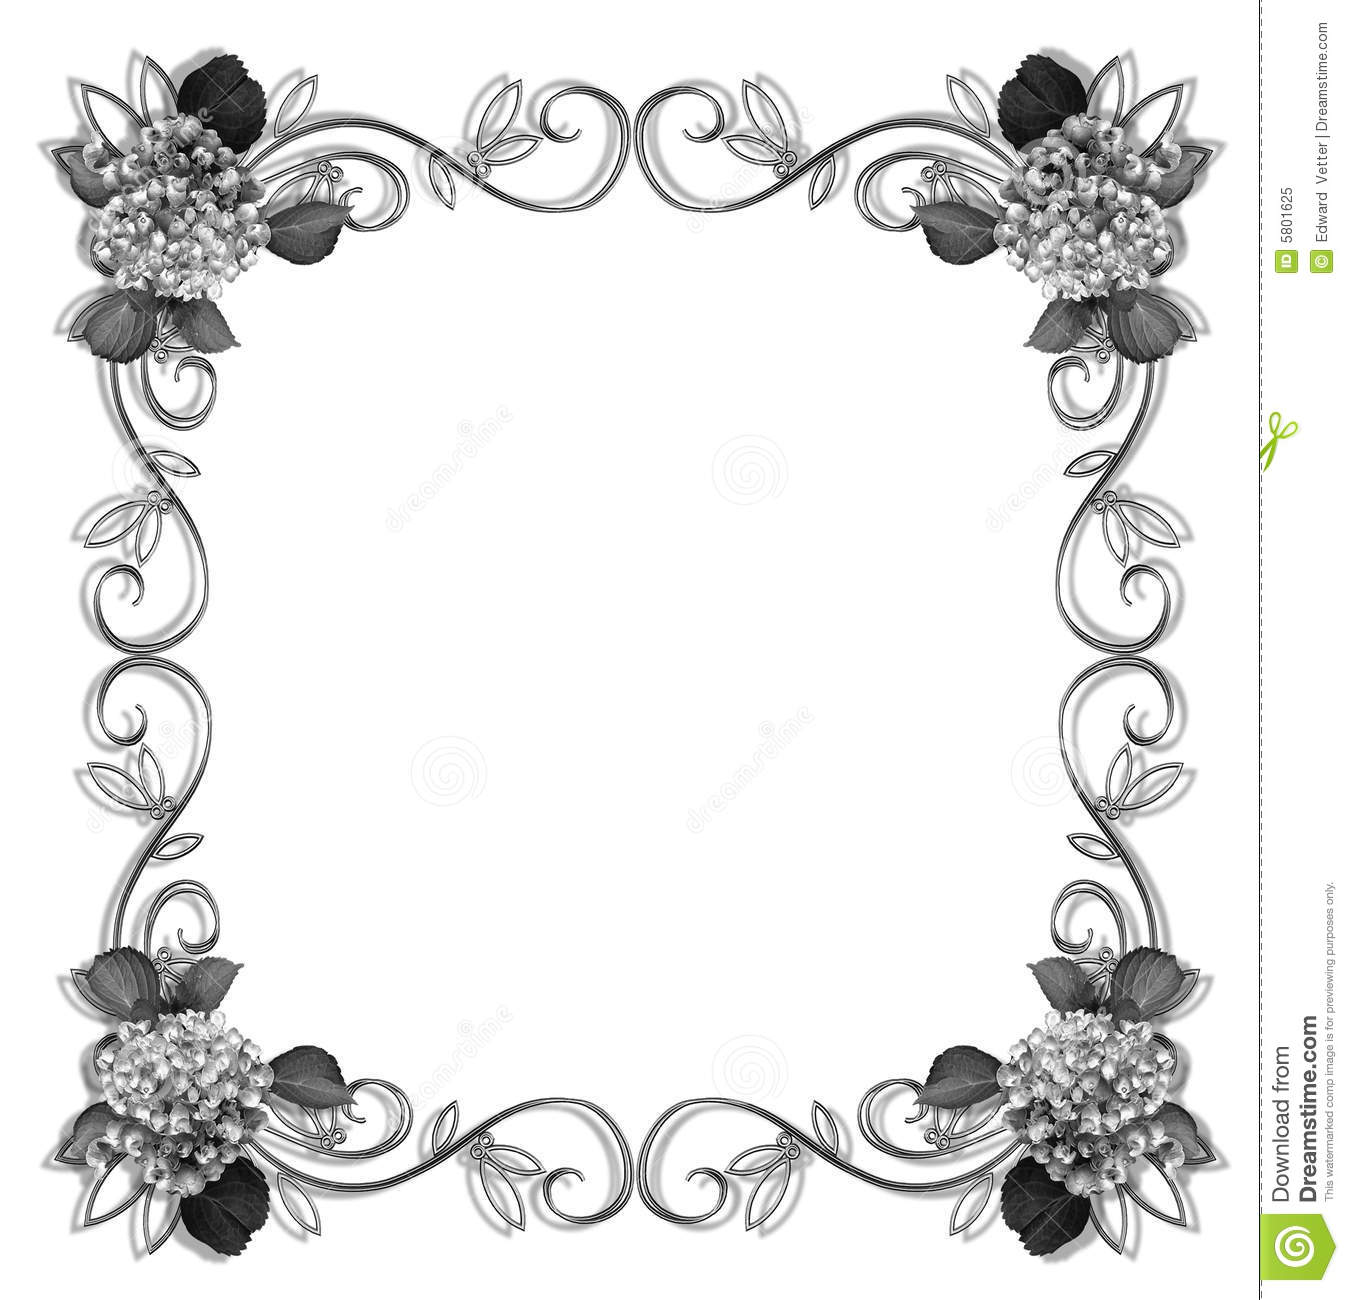 Floral Border Design Element Black And White Stock Illustration